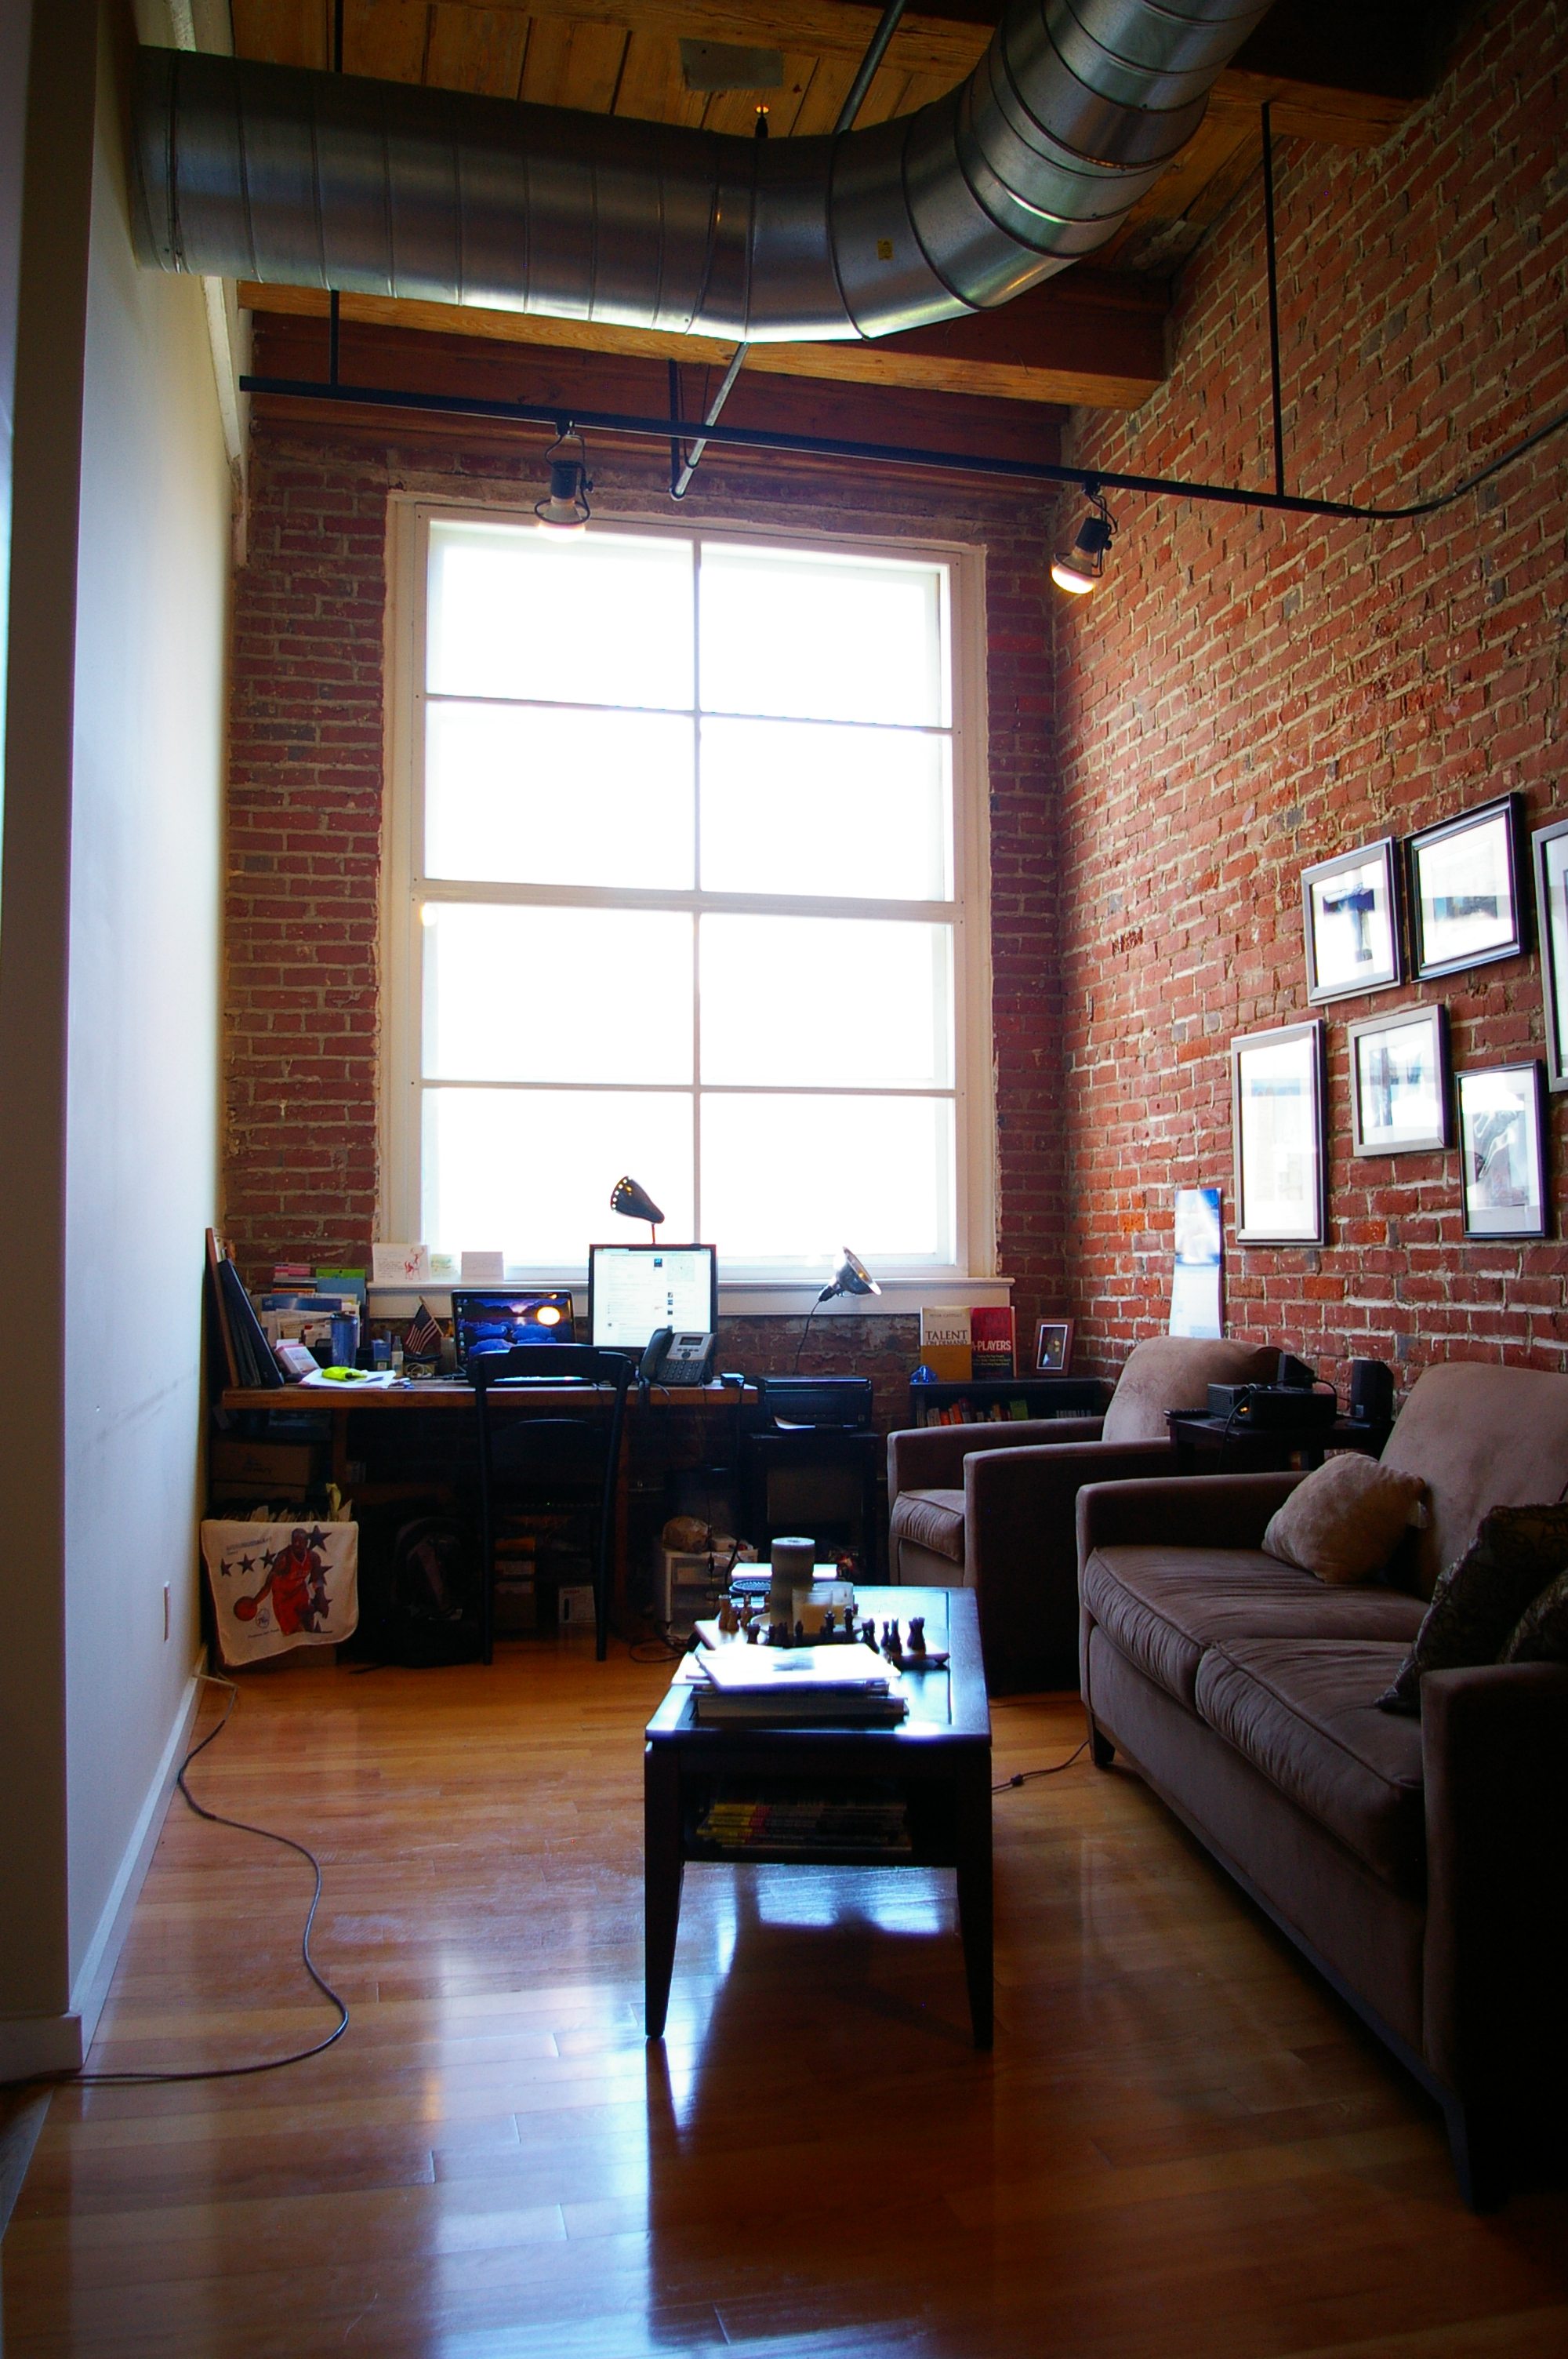 1010 Arch Street Looking For Roommate Center City